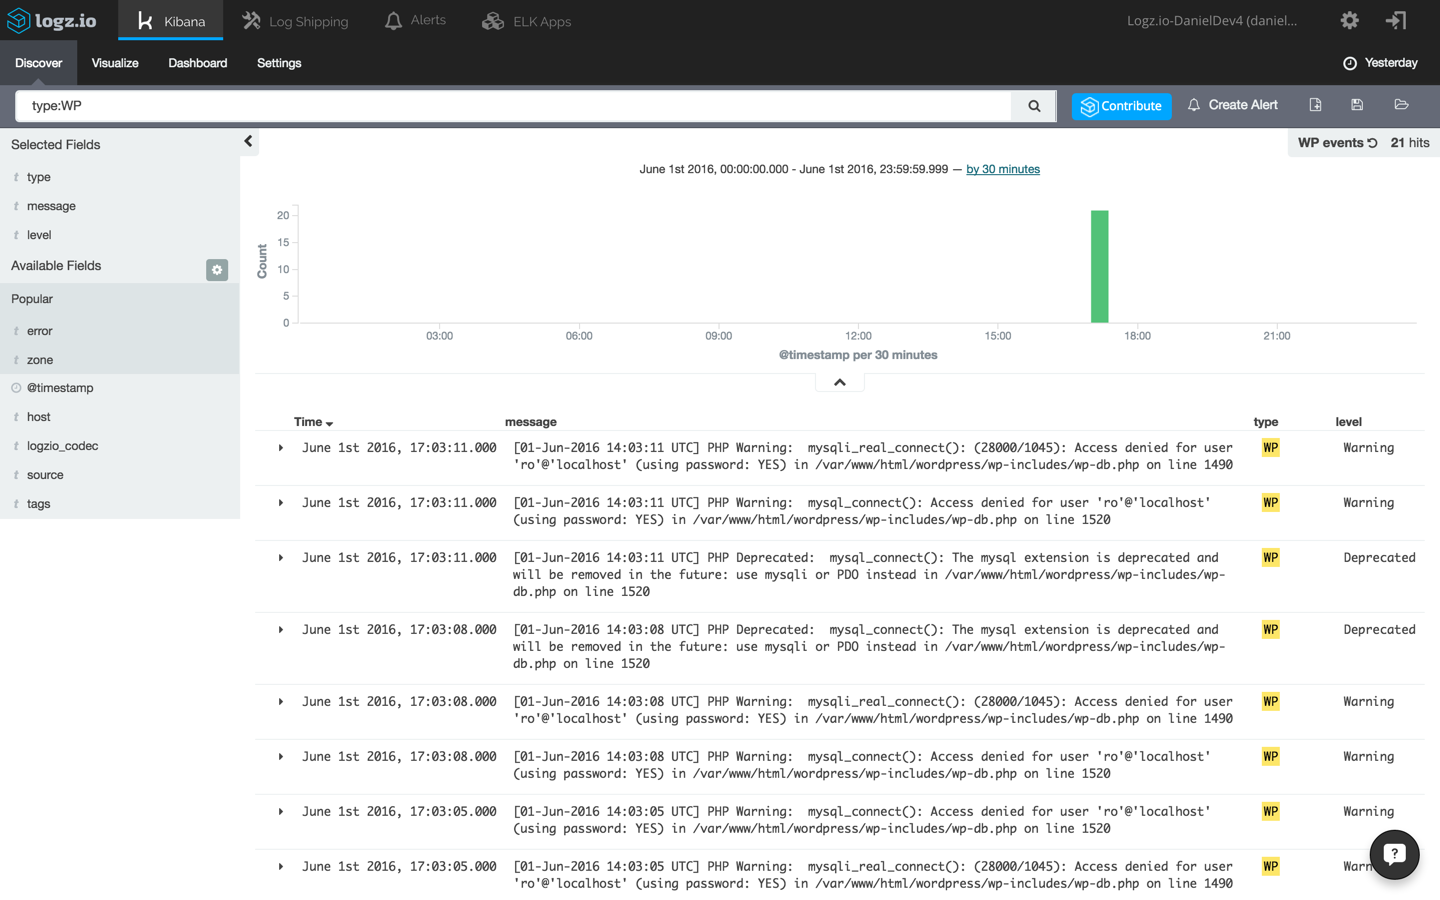 WordPress logs in Kibana